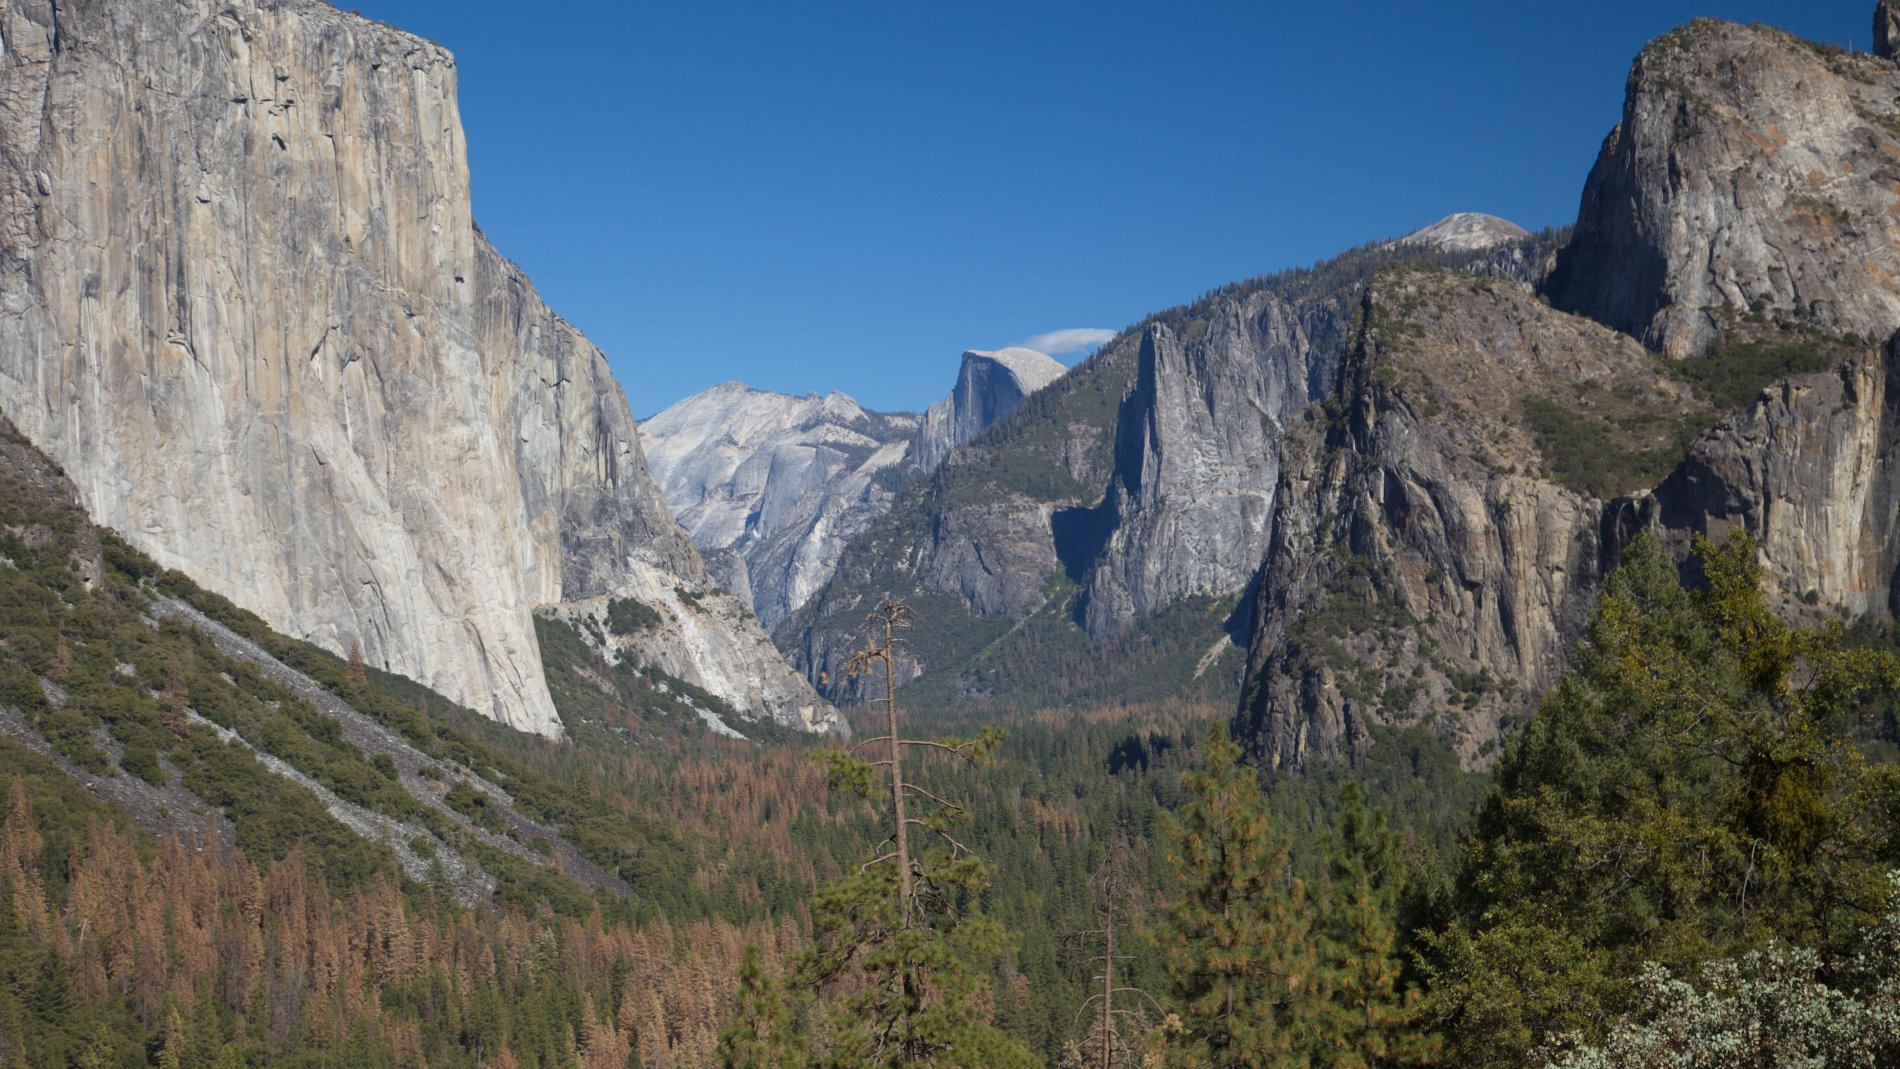 IMG_1338.jpg: Yosemite Valley